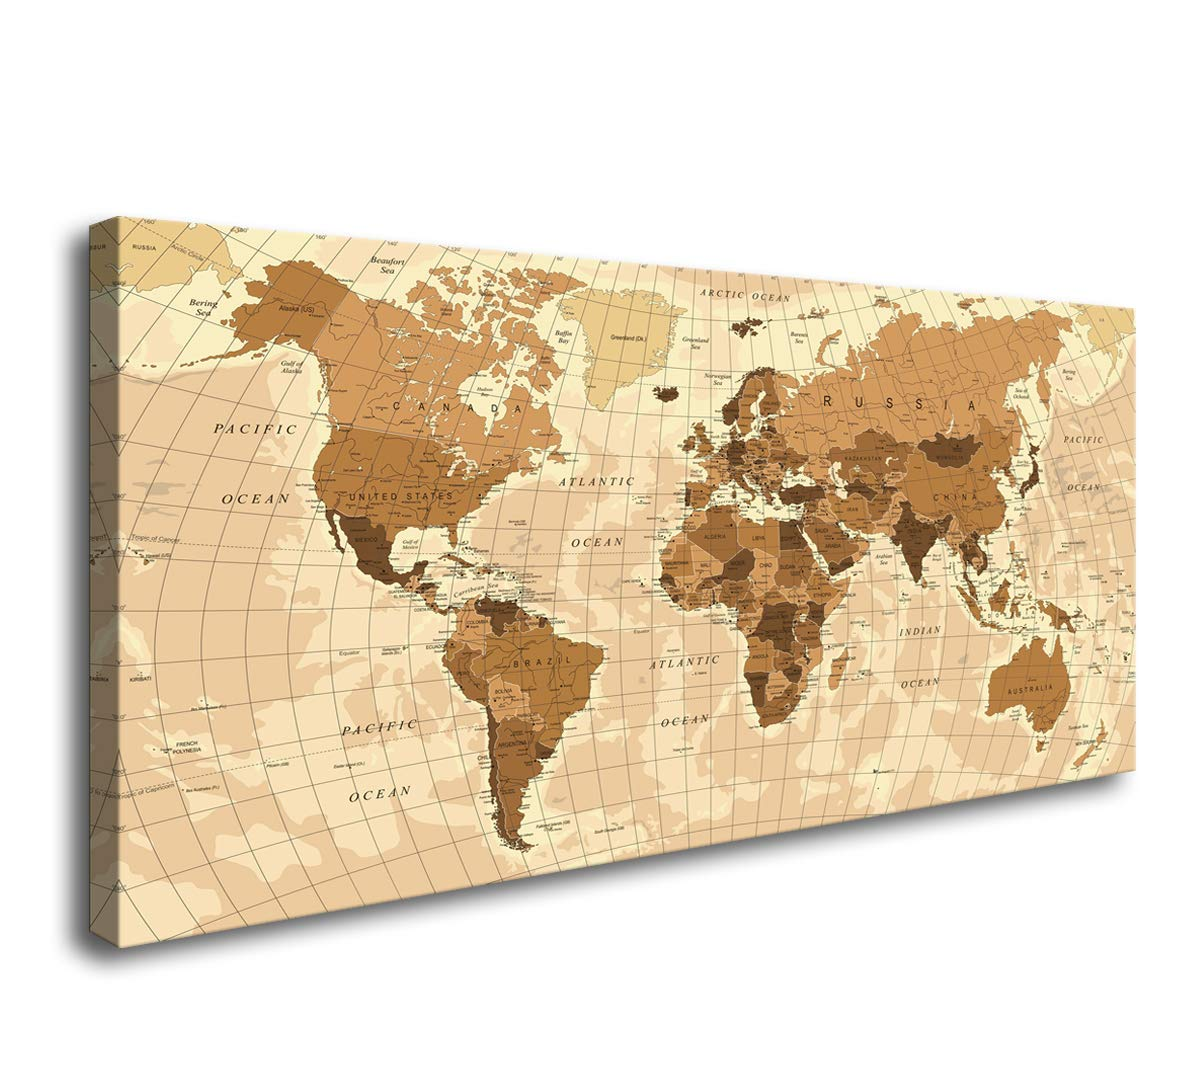 World Map On Hands Wall Art Poster Grand Format A0 Large Print 02 Cheapest Price From Our Site Decorative Arts